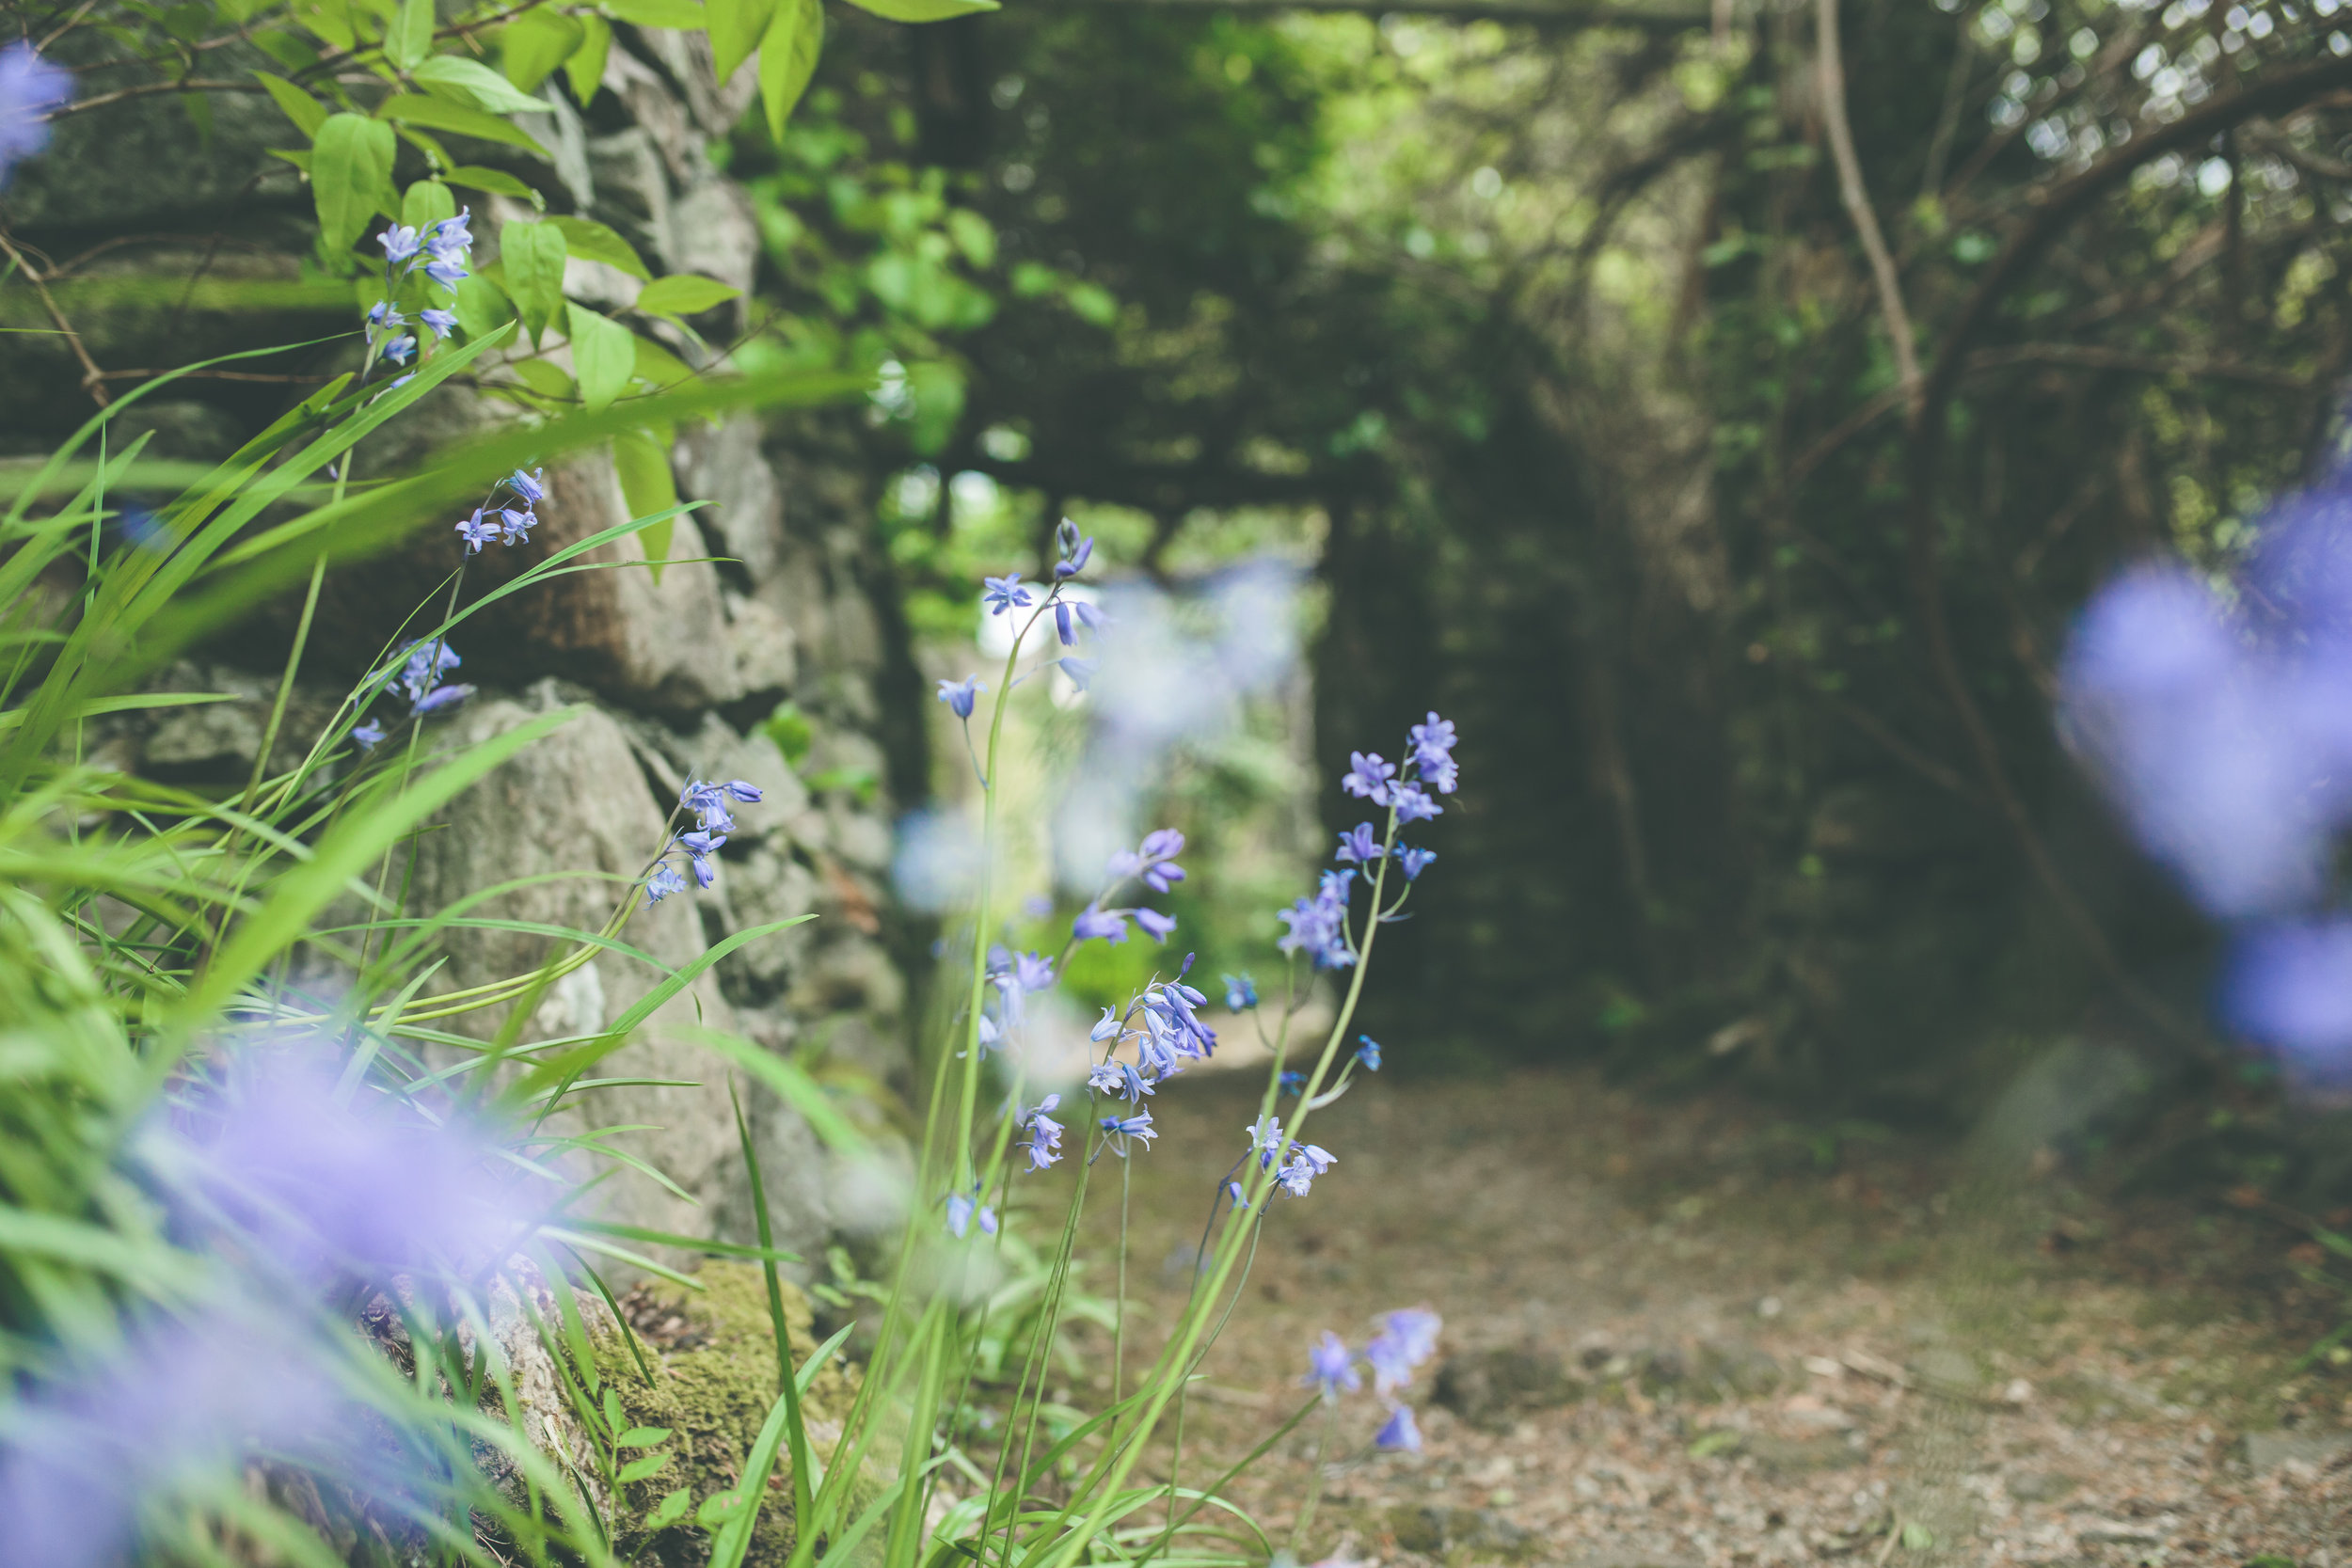 Bluebells by Shropshire wedding photographer in Ireland